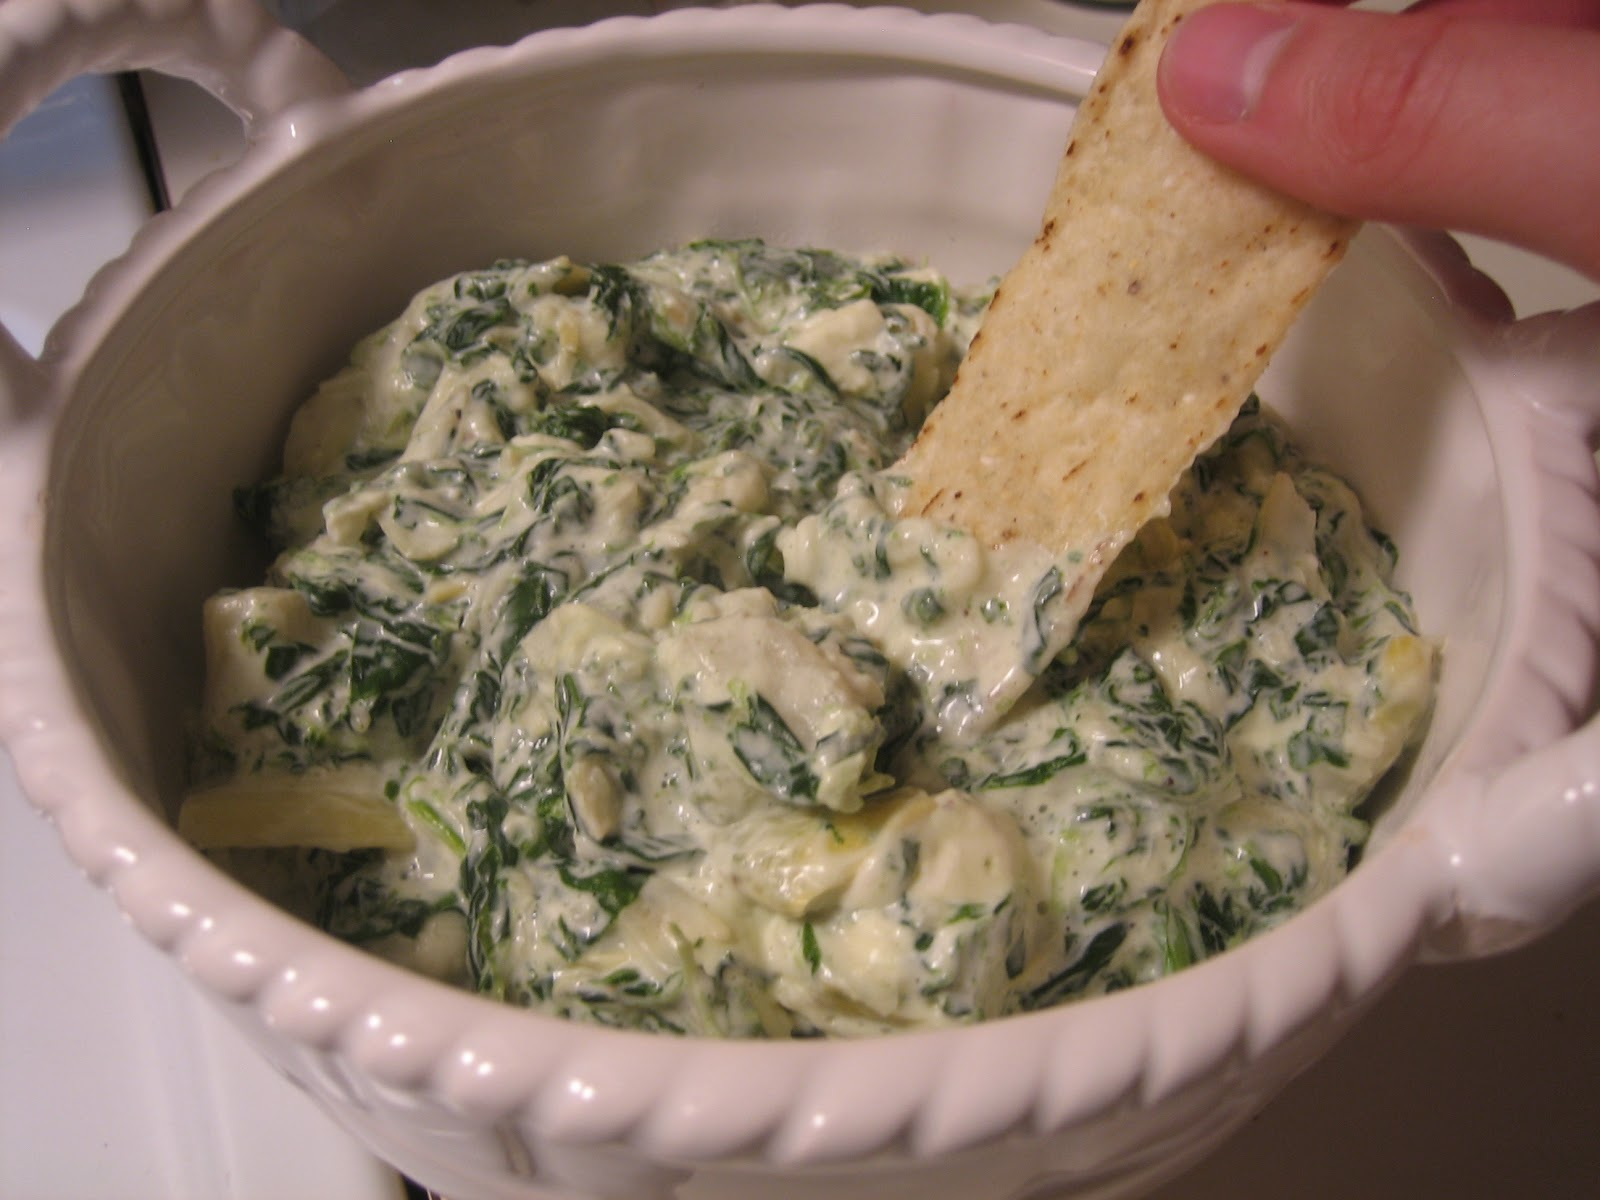 Discovering the Extraordinary: Hot Artichoke Spinach Dip